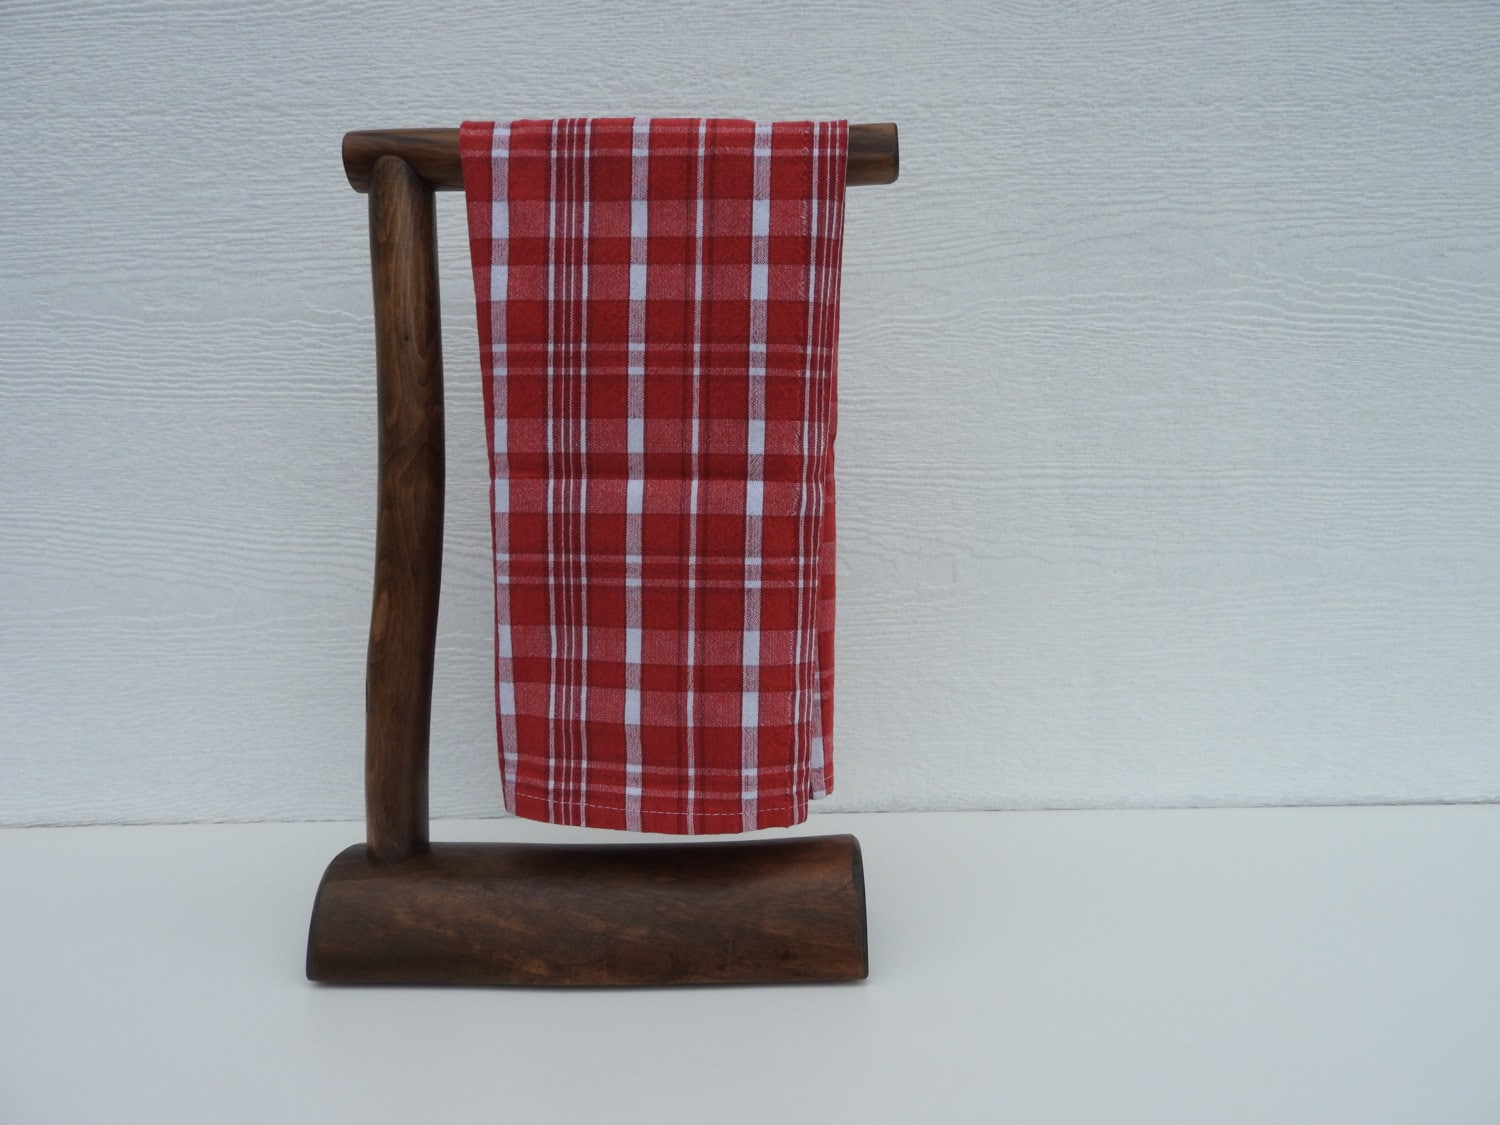 Countertop Log Hand Towel Holder Espresso Stain